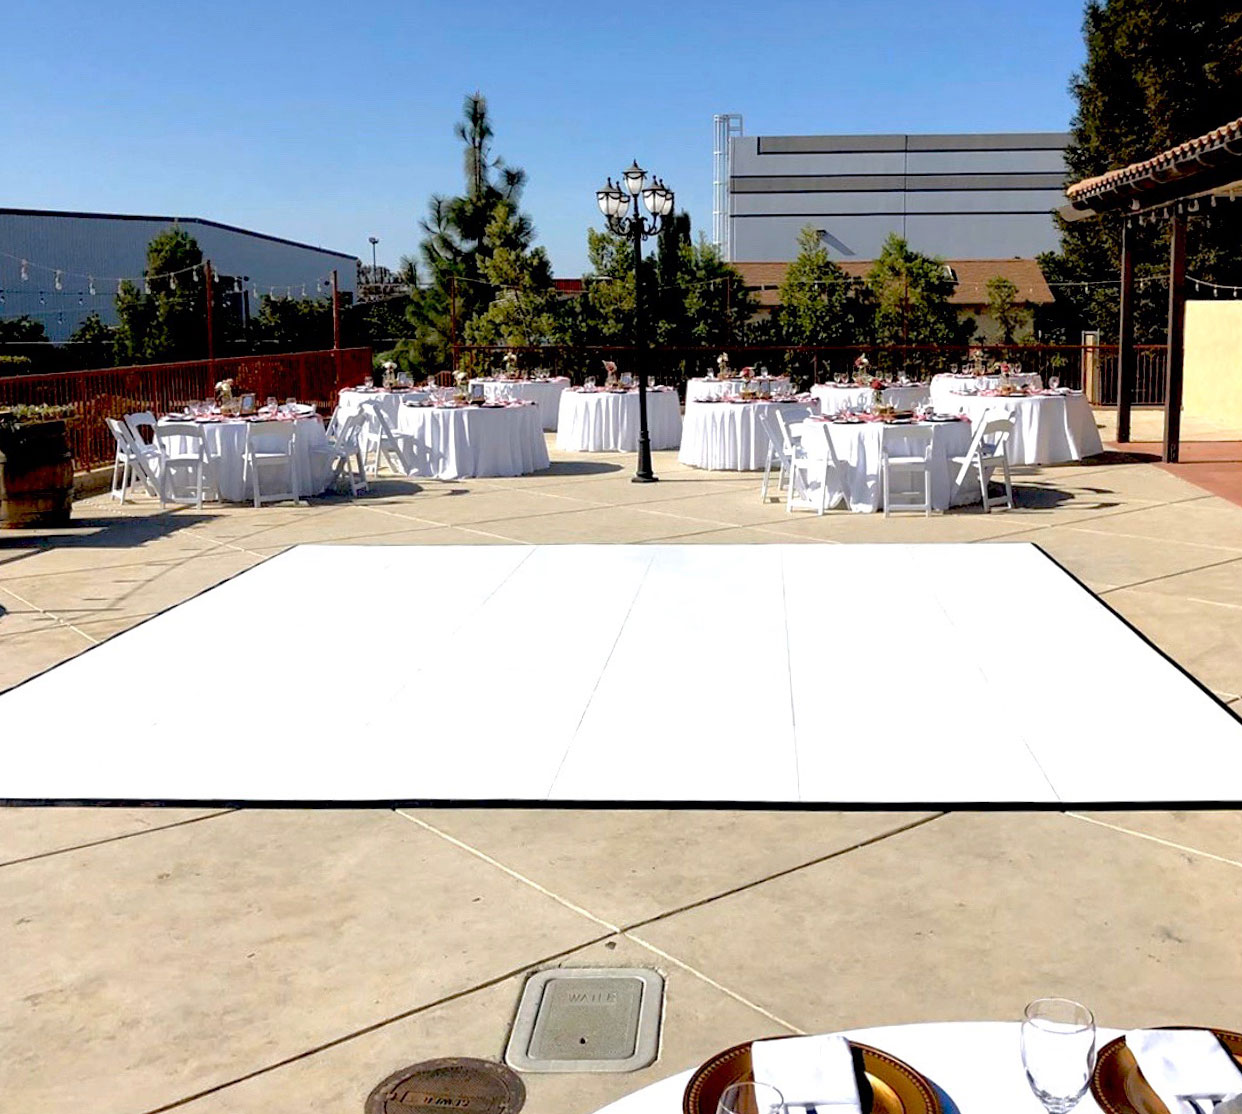 Slate white dance floor in the center of a wedding setup